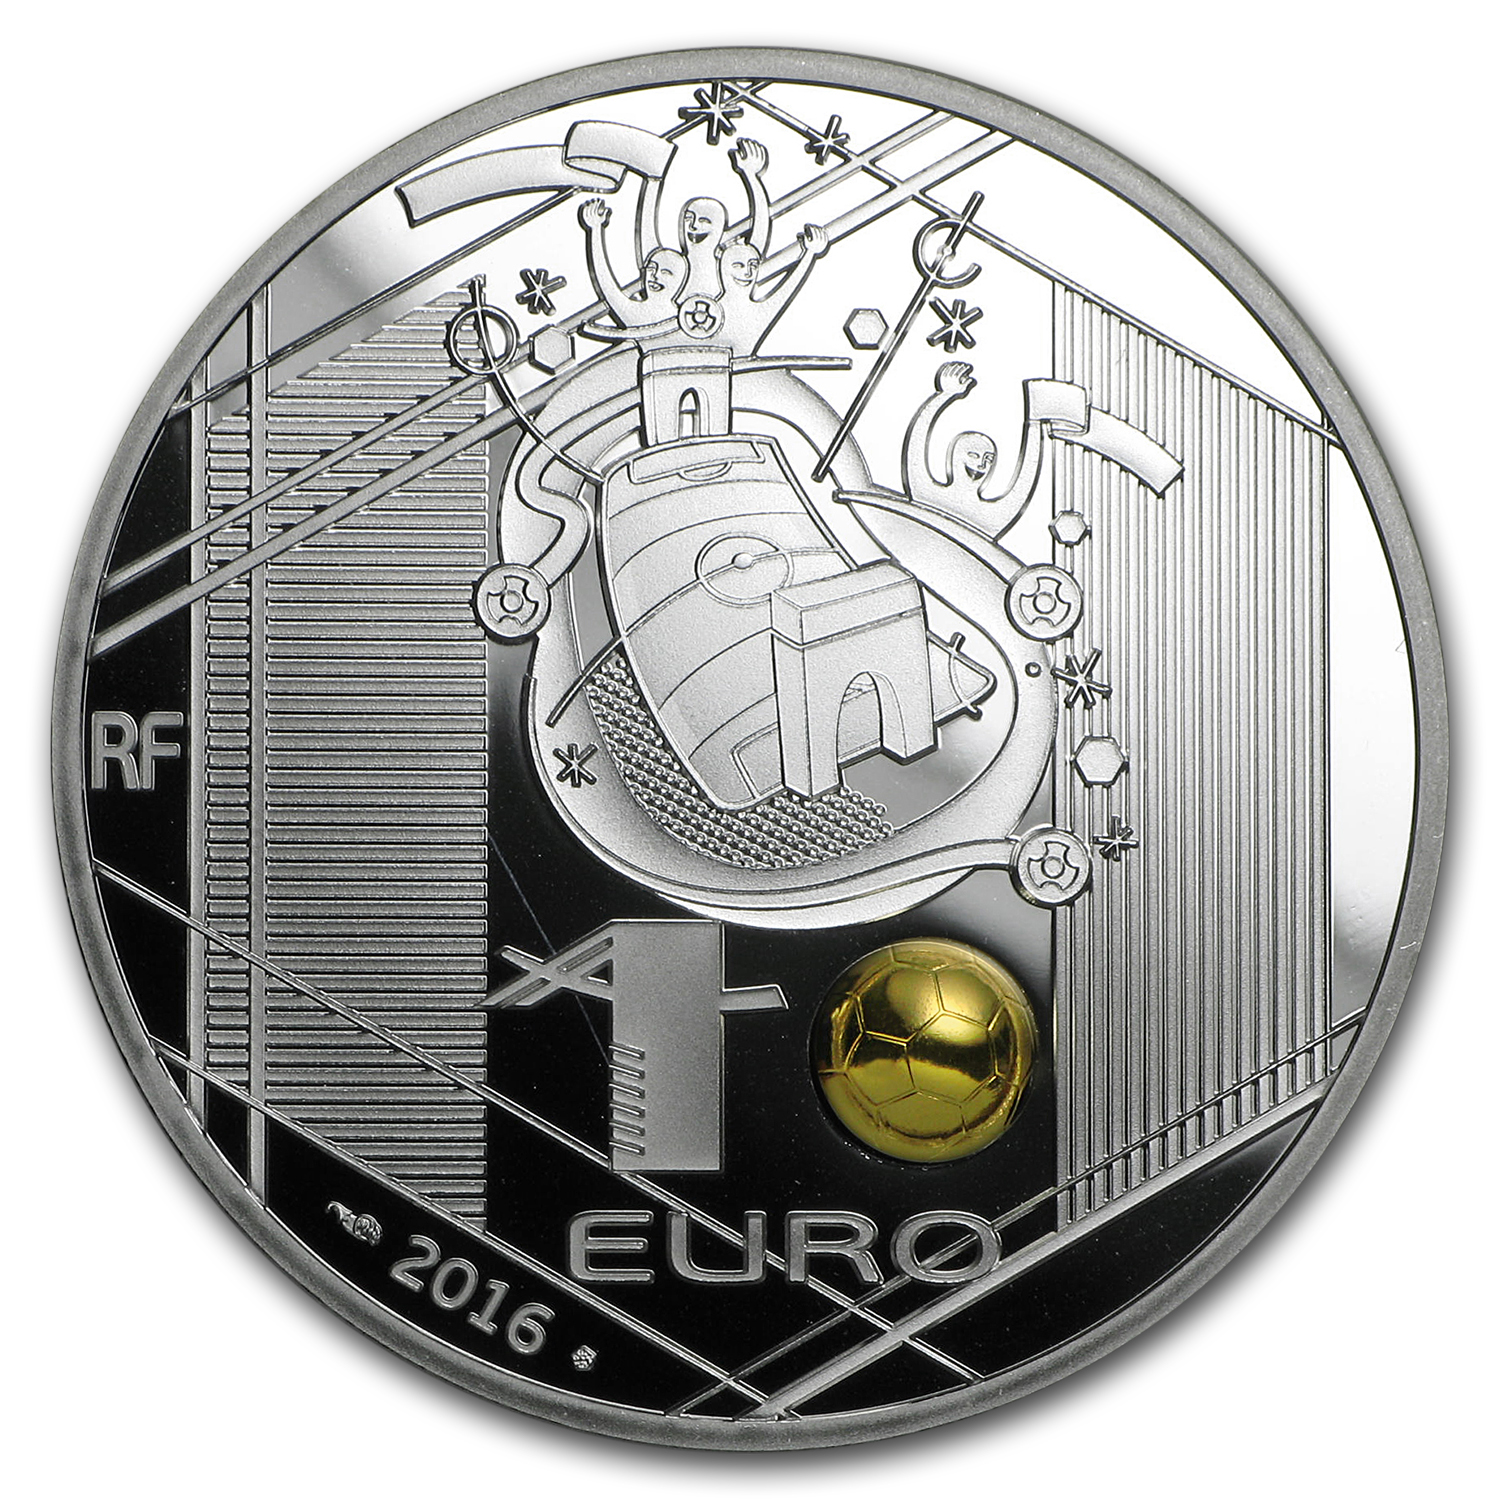 2016 France Silver €10 UEFA Cup Proof (Head Kick)